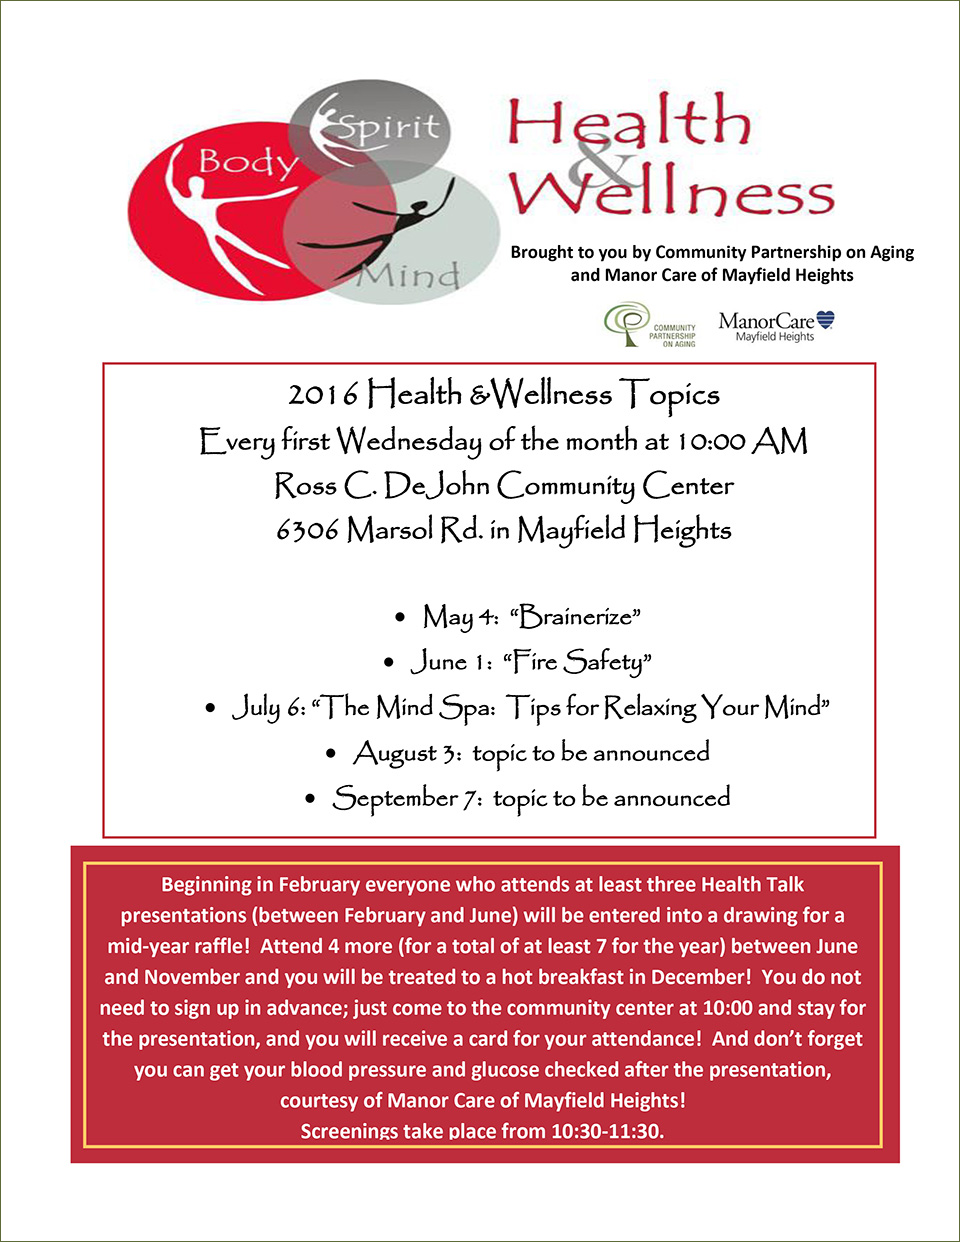 Health & Wellness Talks in Mayfield Heights. Every first Wednesday of the month at Ross DeJohn Community Center in Mayfield Heights, Ohio.